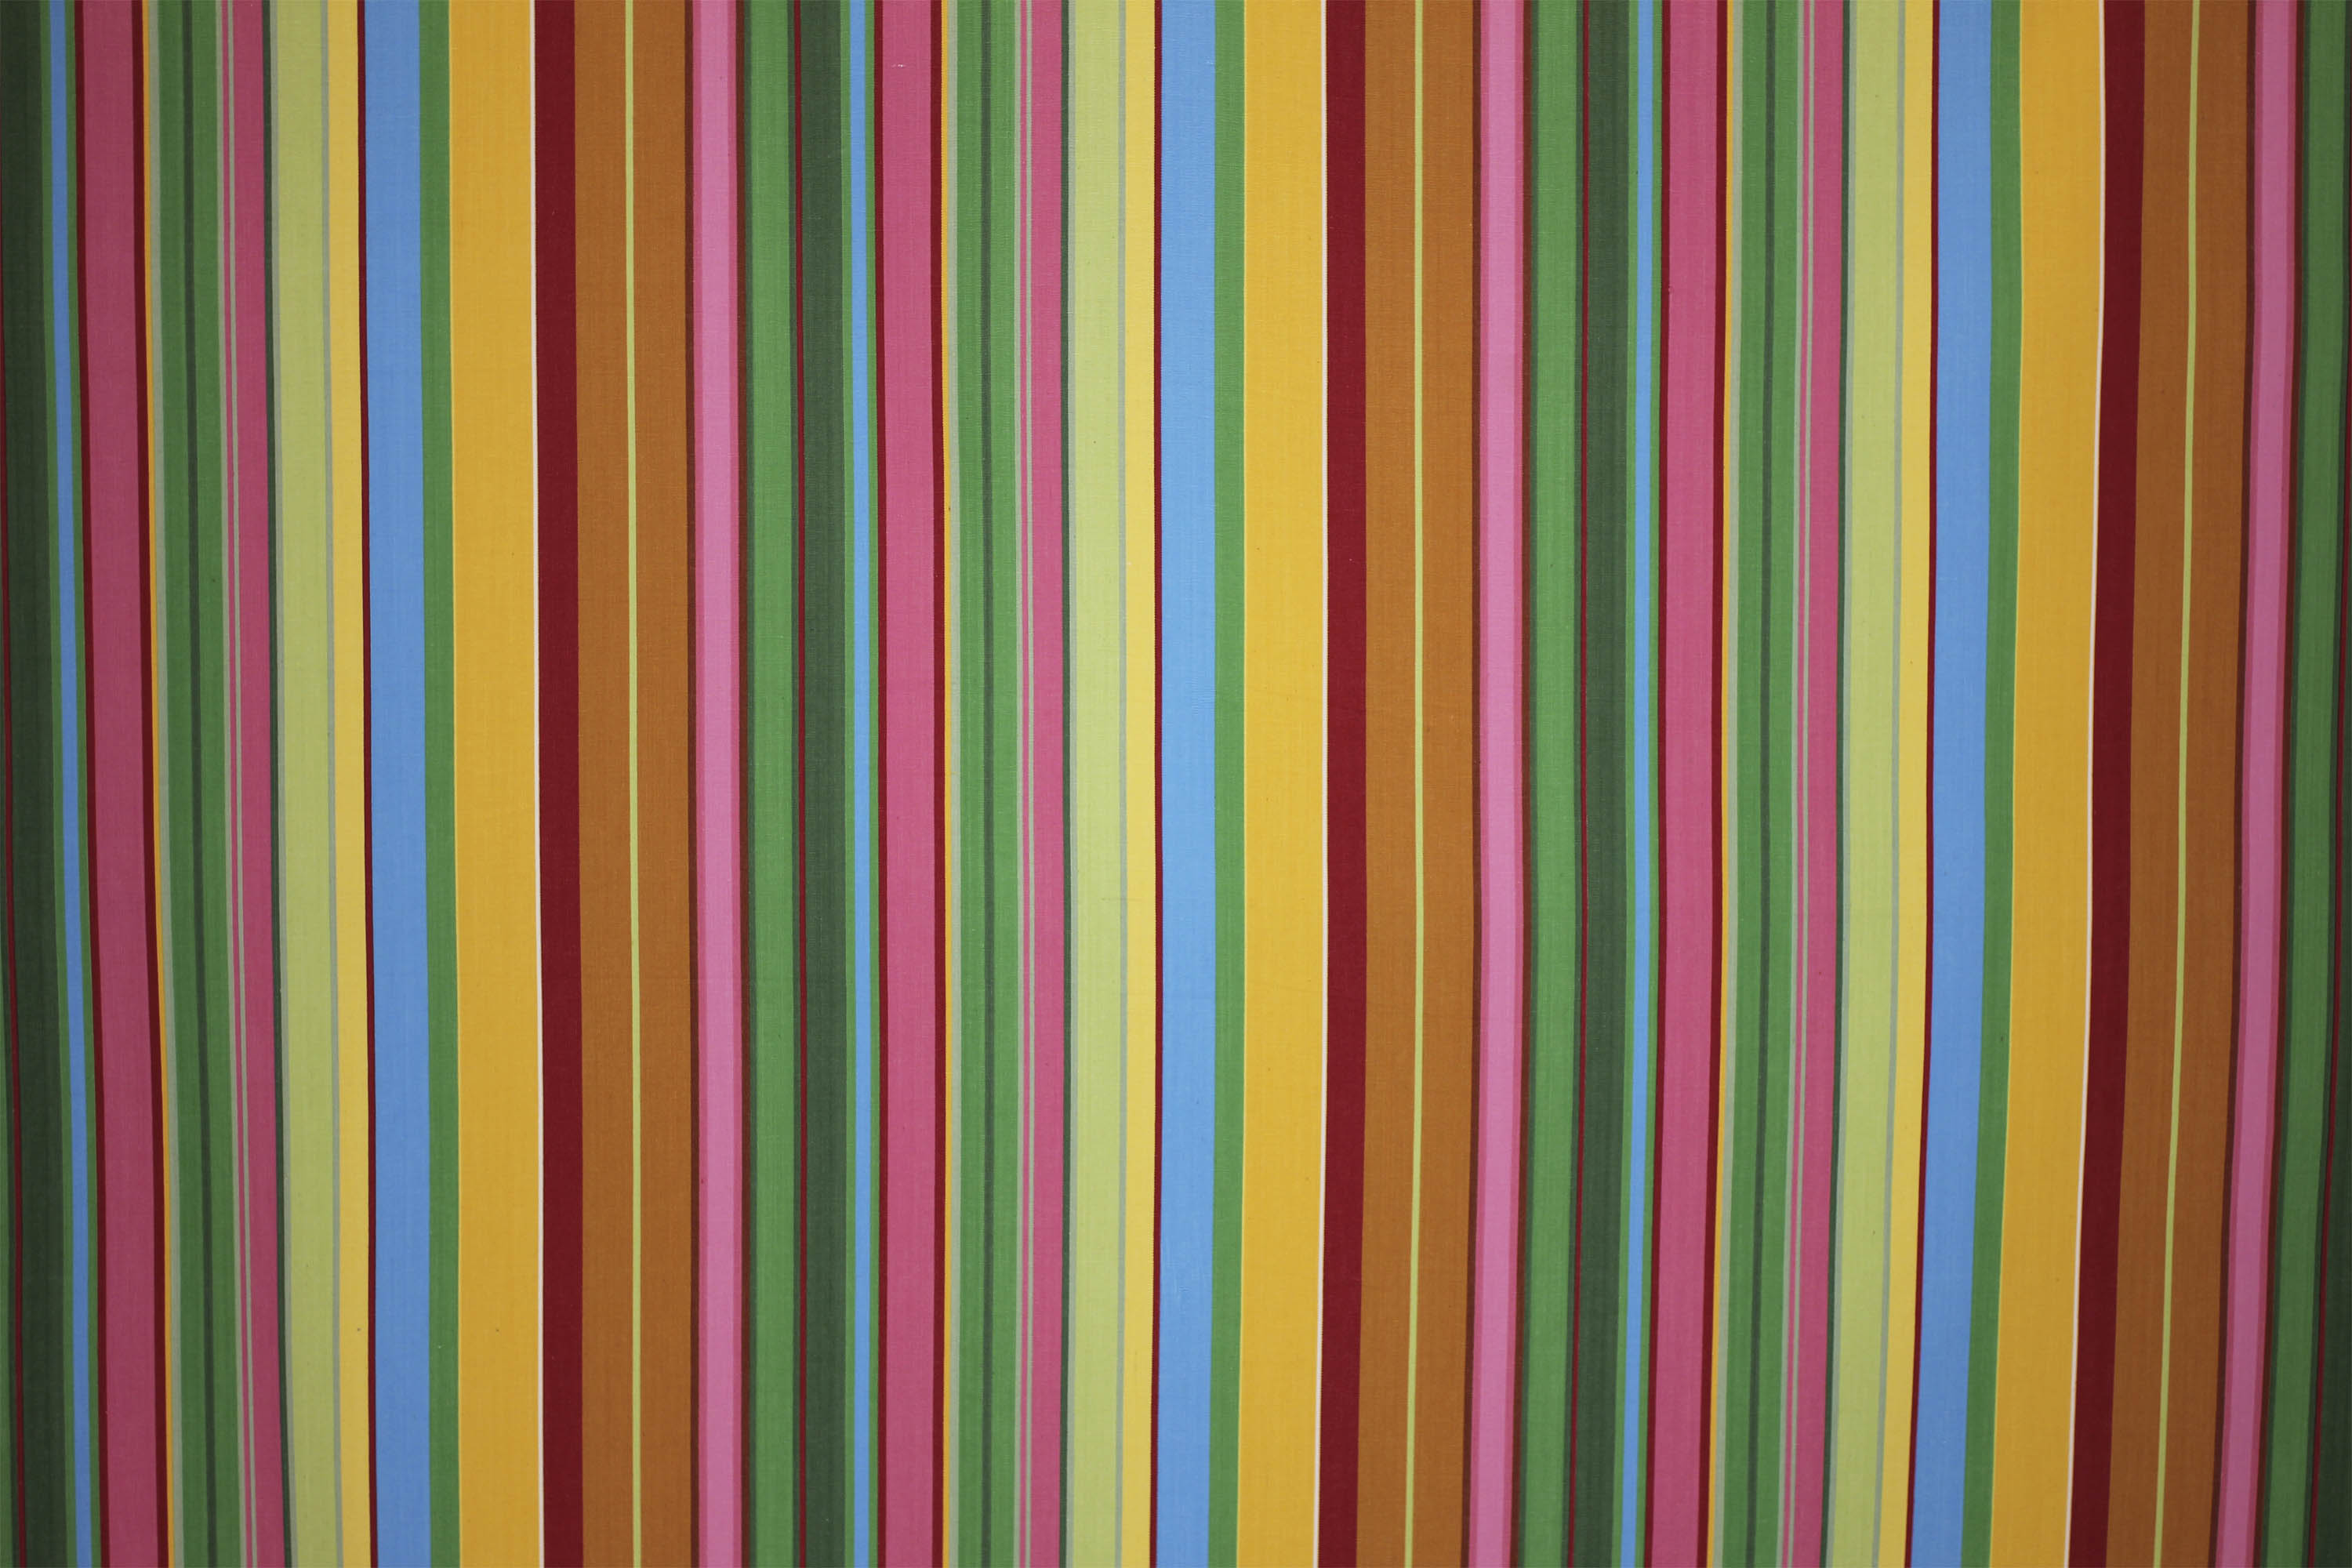 Snooker Is A Primarily Pink Green And Turquoise Striped Fabric 150cm Wide Suitable For Upholstery Making Curtains Roman Roller Vertical Blinds